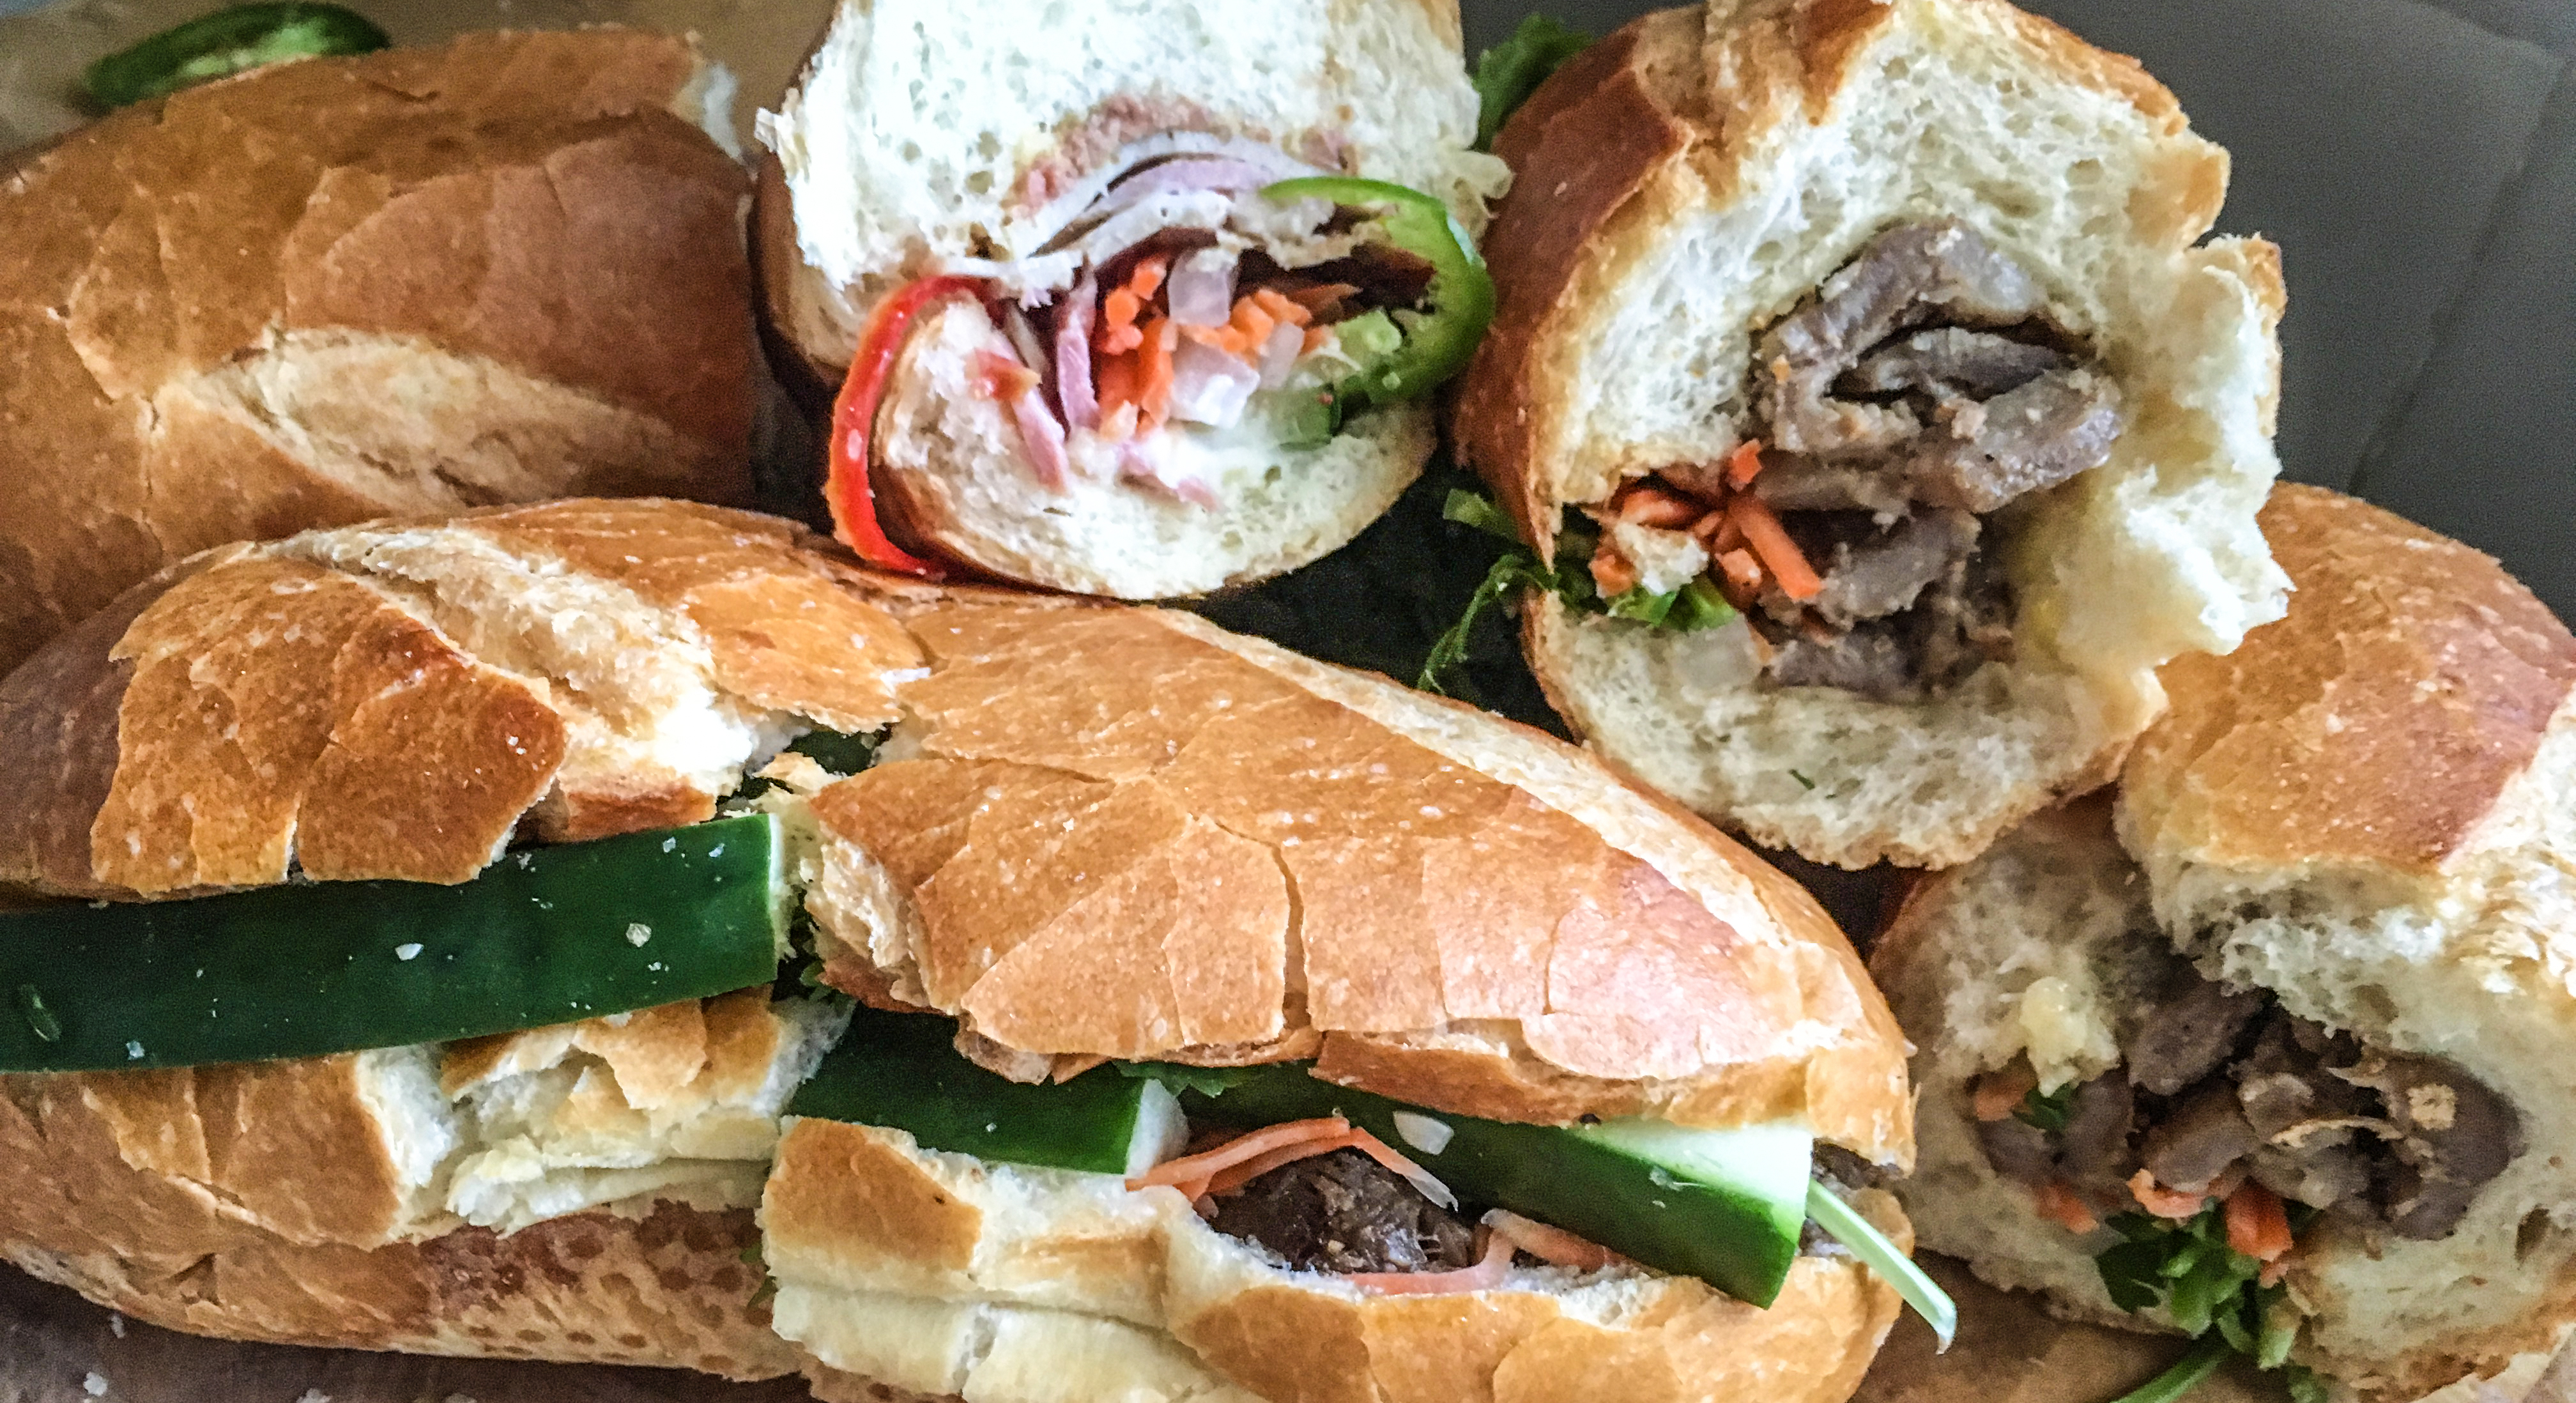 A cluster of crusty and flavorful banh mi